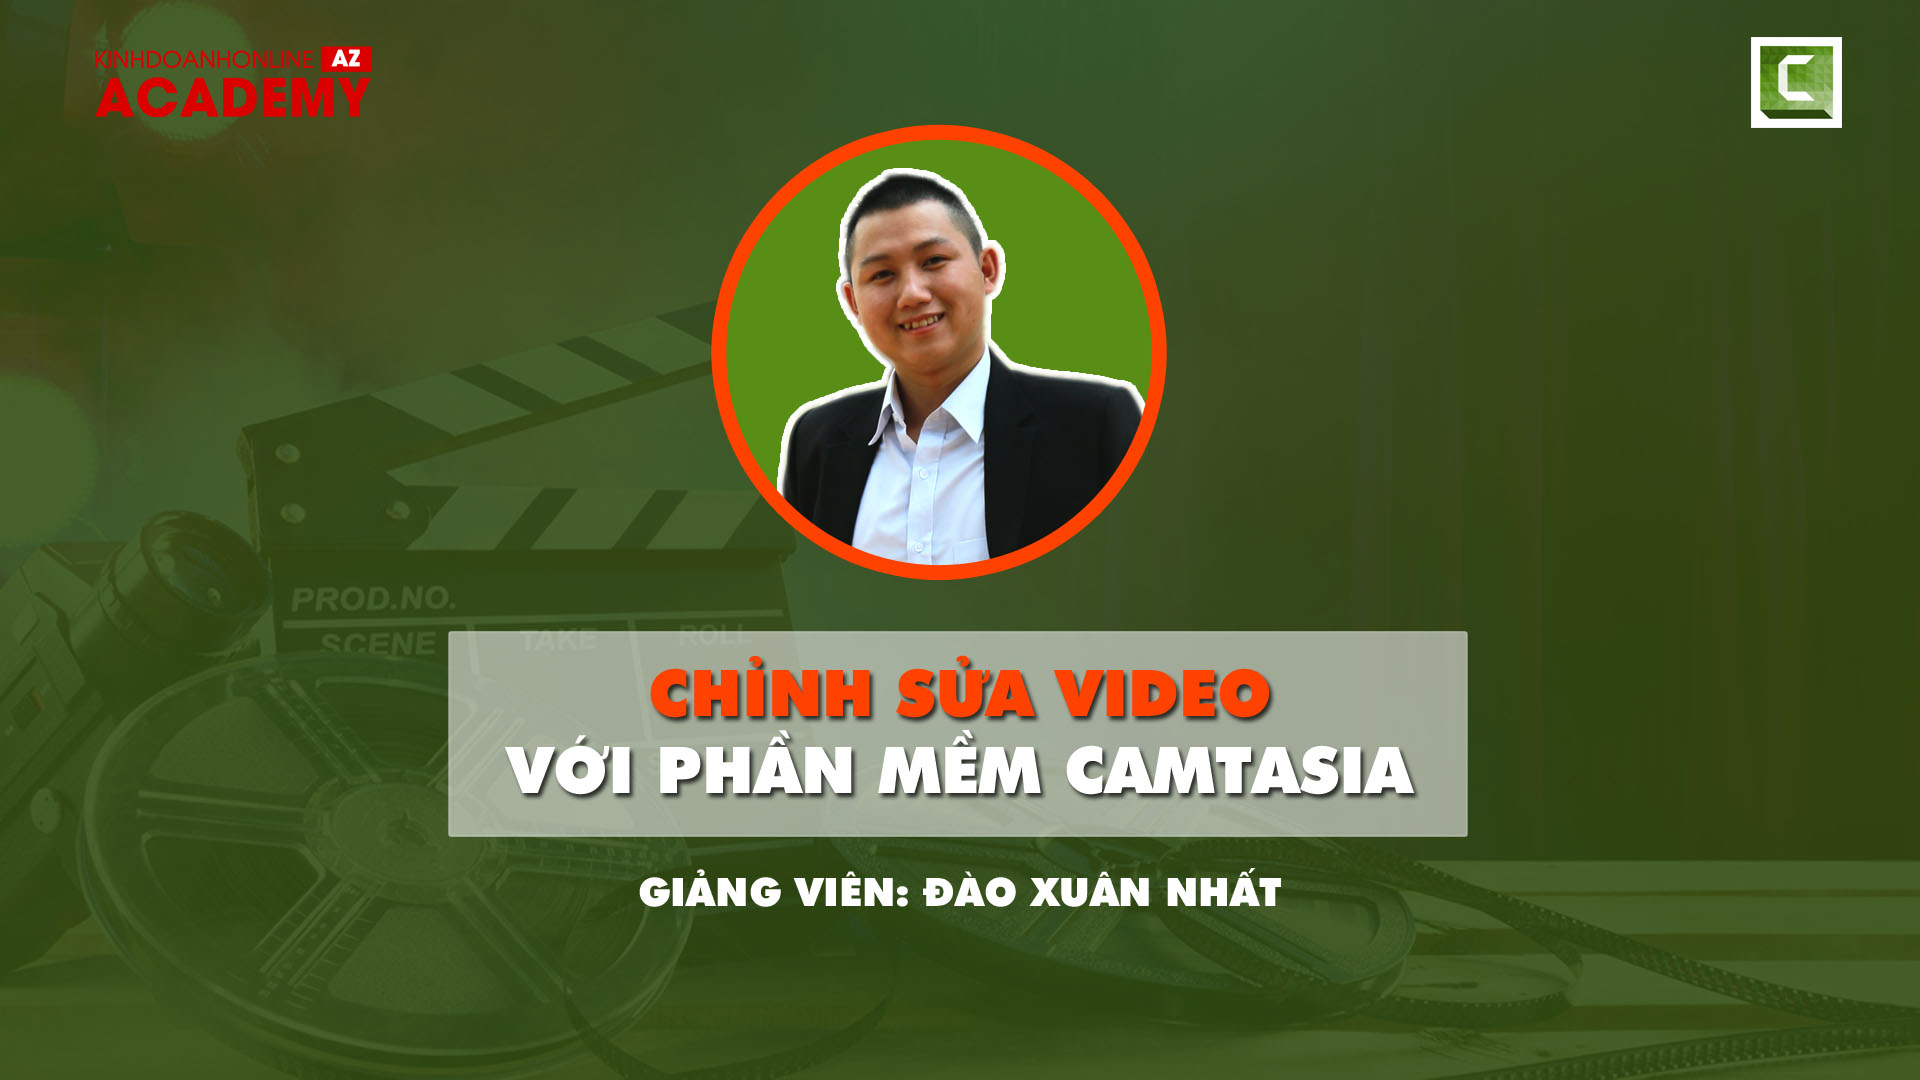 chinh-sua-video-voi-phan-mem-camtasia-hd